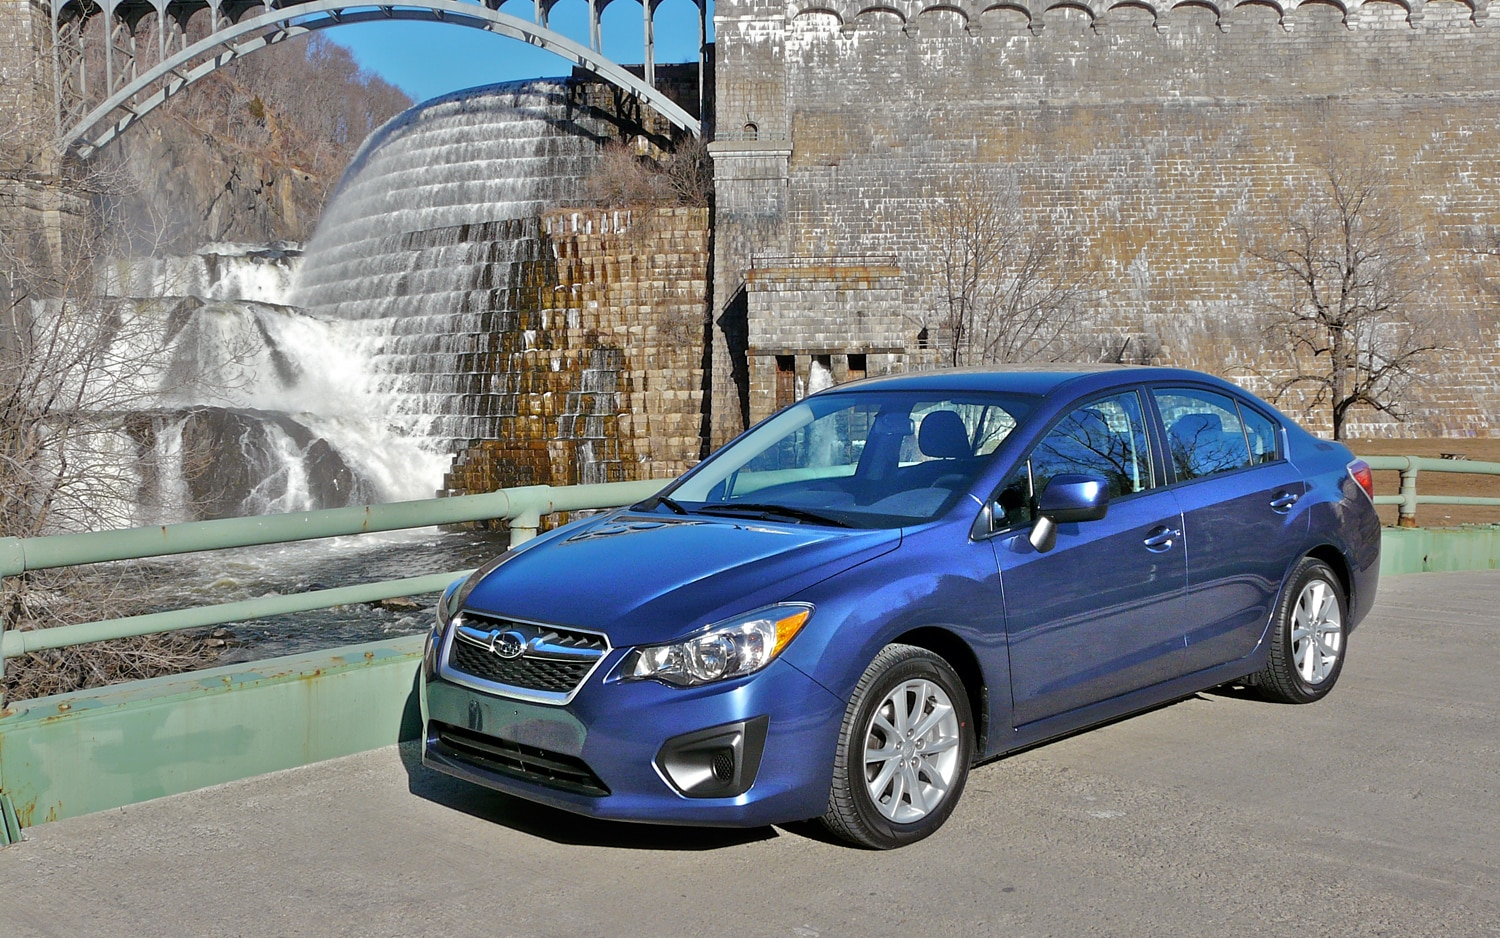 2012 Subaru Impreza Front Left Side View1